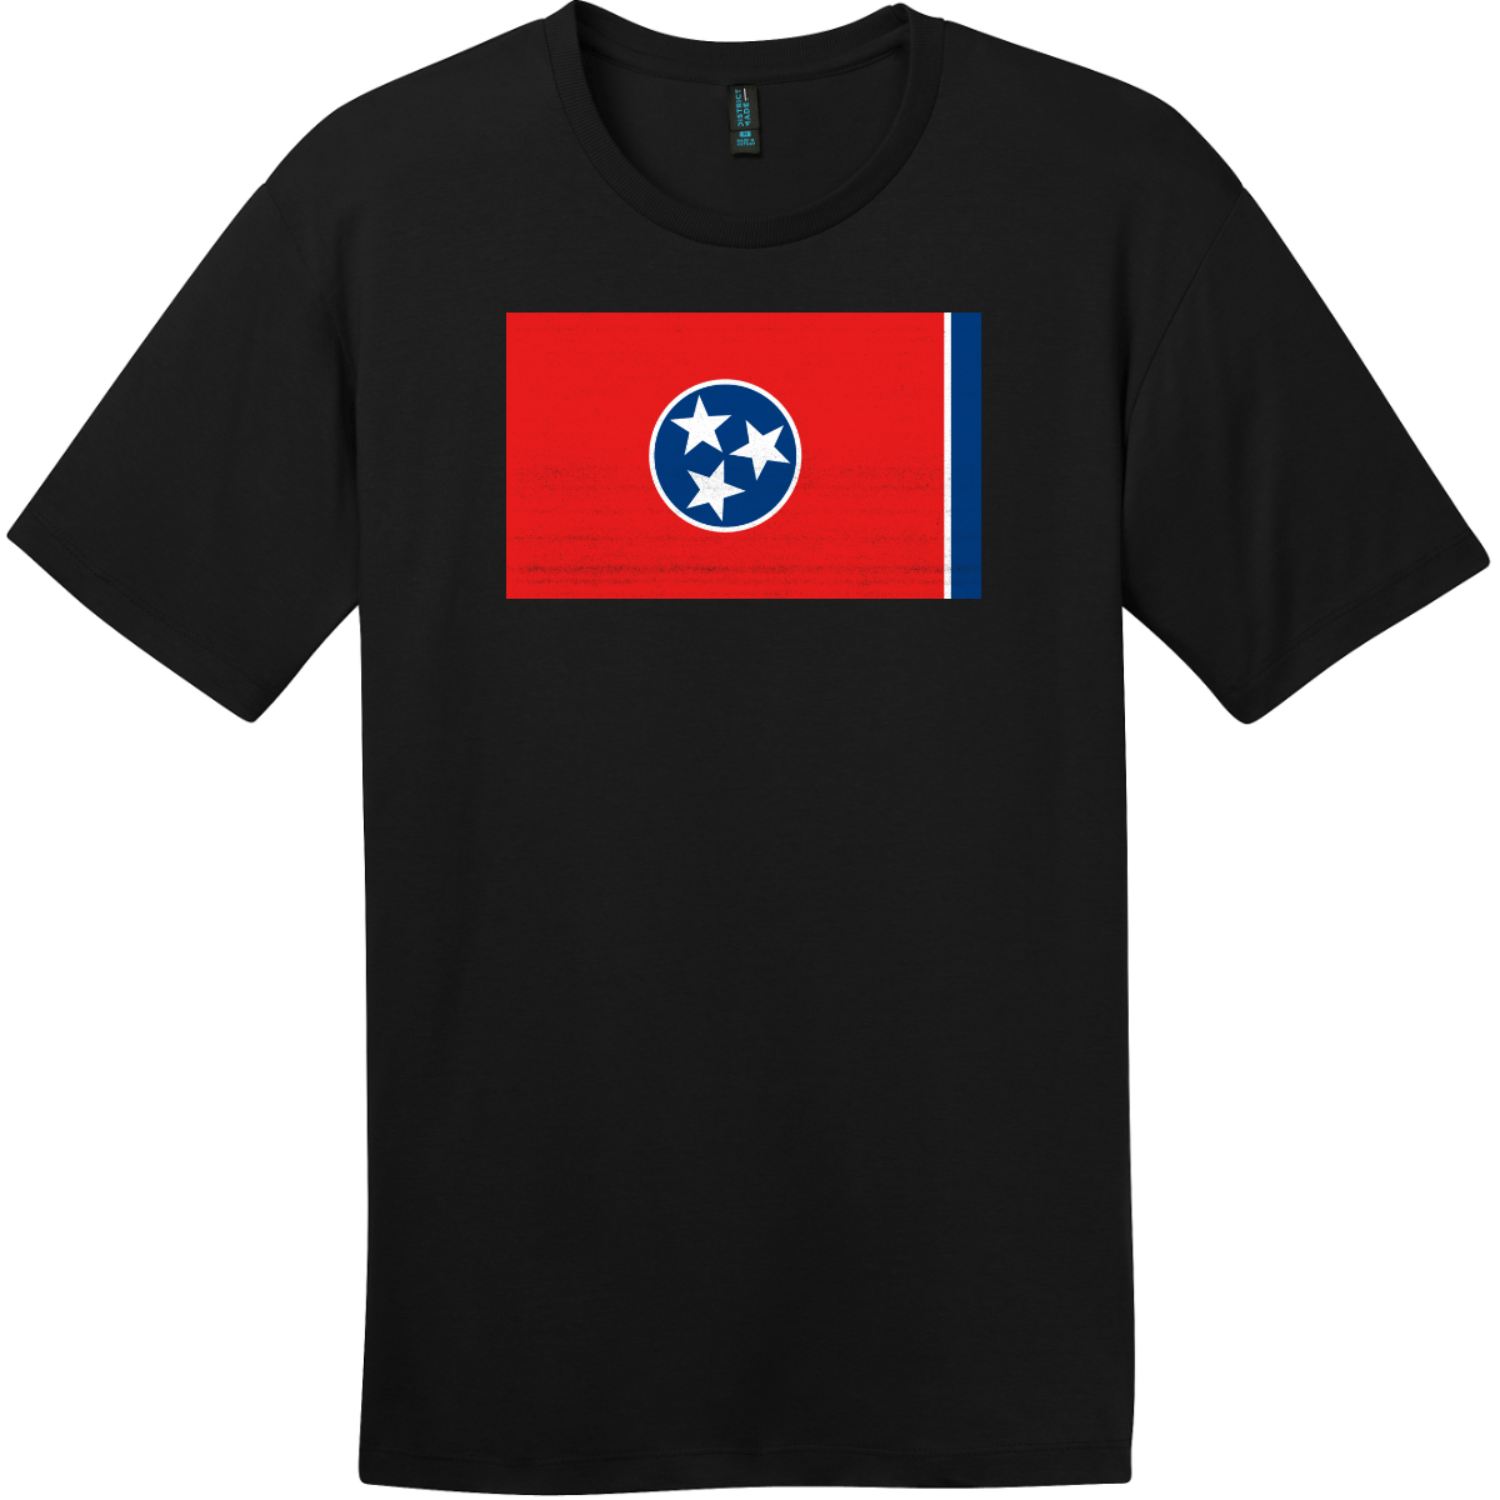 Tennessee State Flag Vintage T-Shirt Jet Black District Perfect Weight Tee DT104